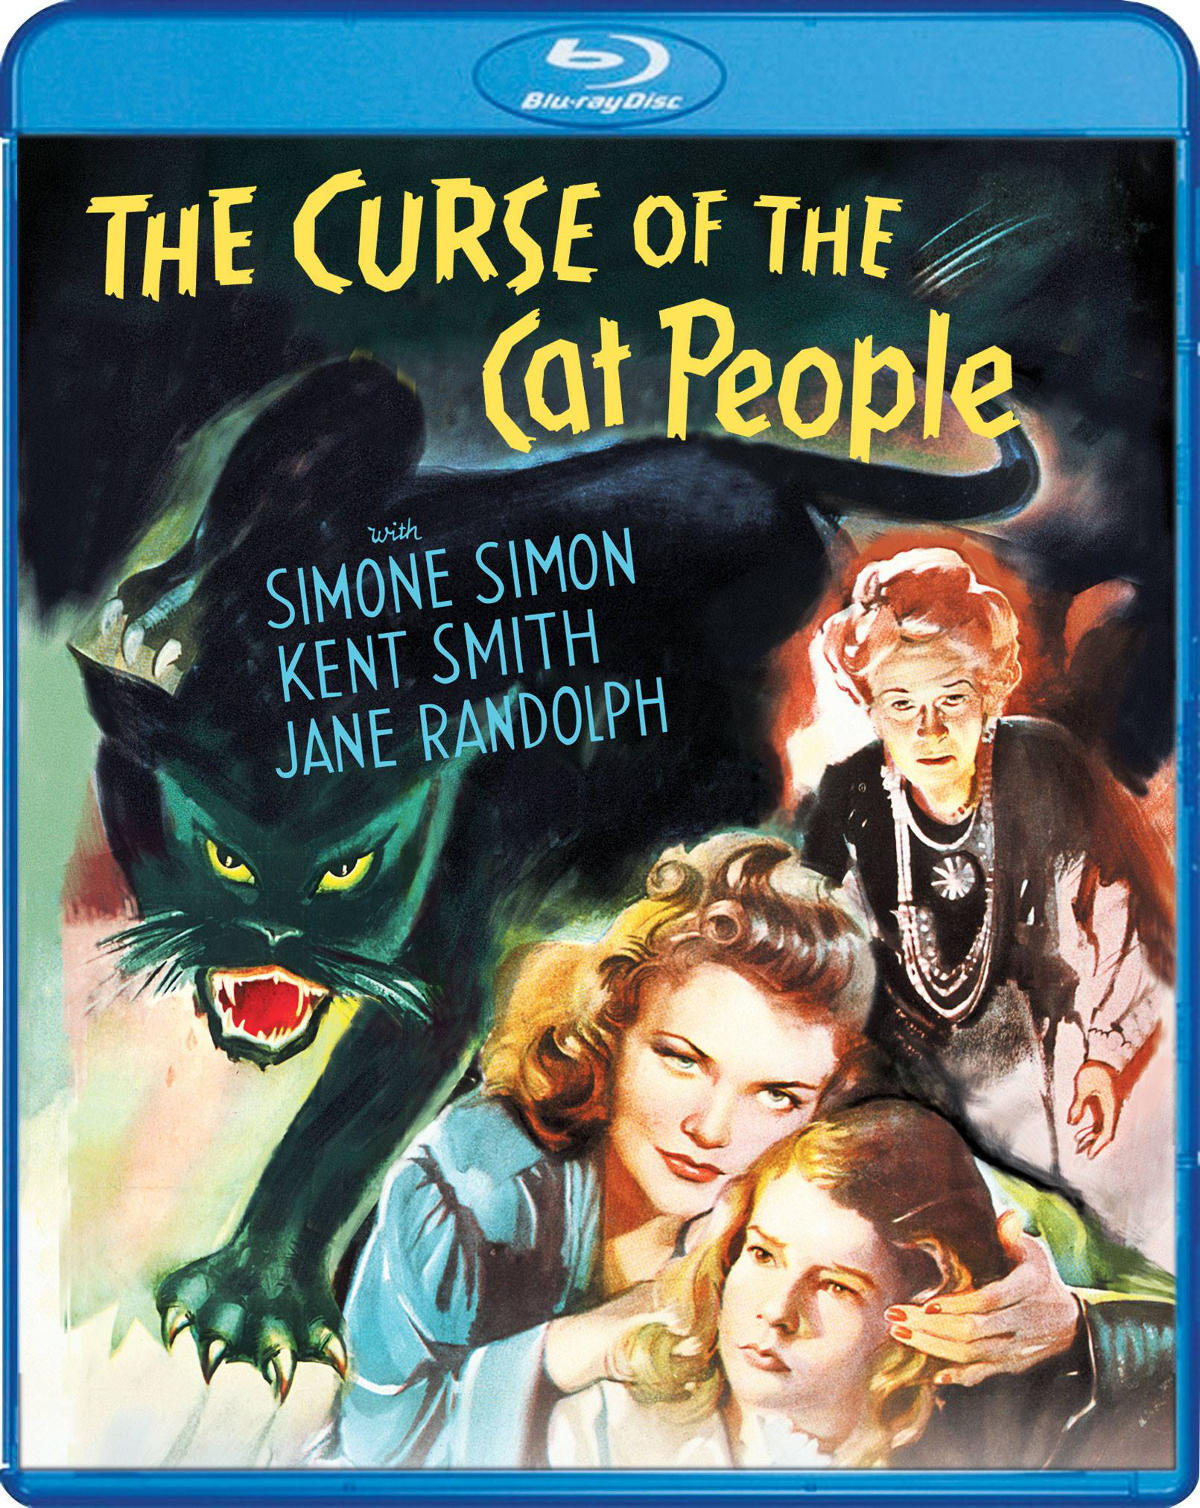 NIGHT OF THE LEPUS, THE CURSE OF THE CAT PEOPLE, and ALIEN